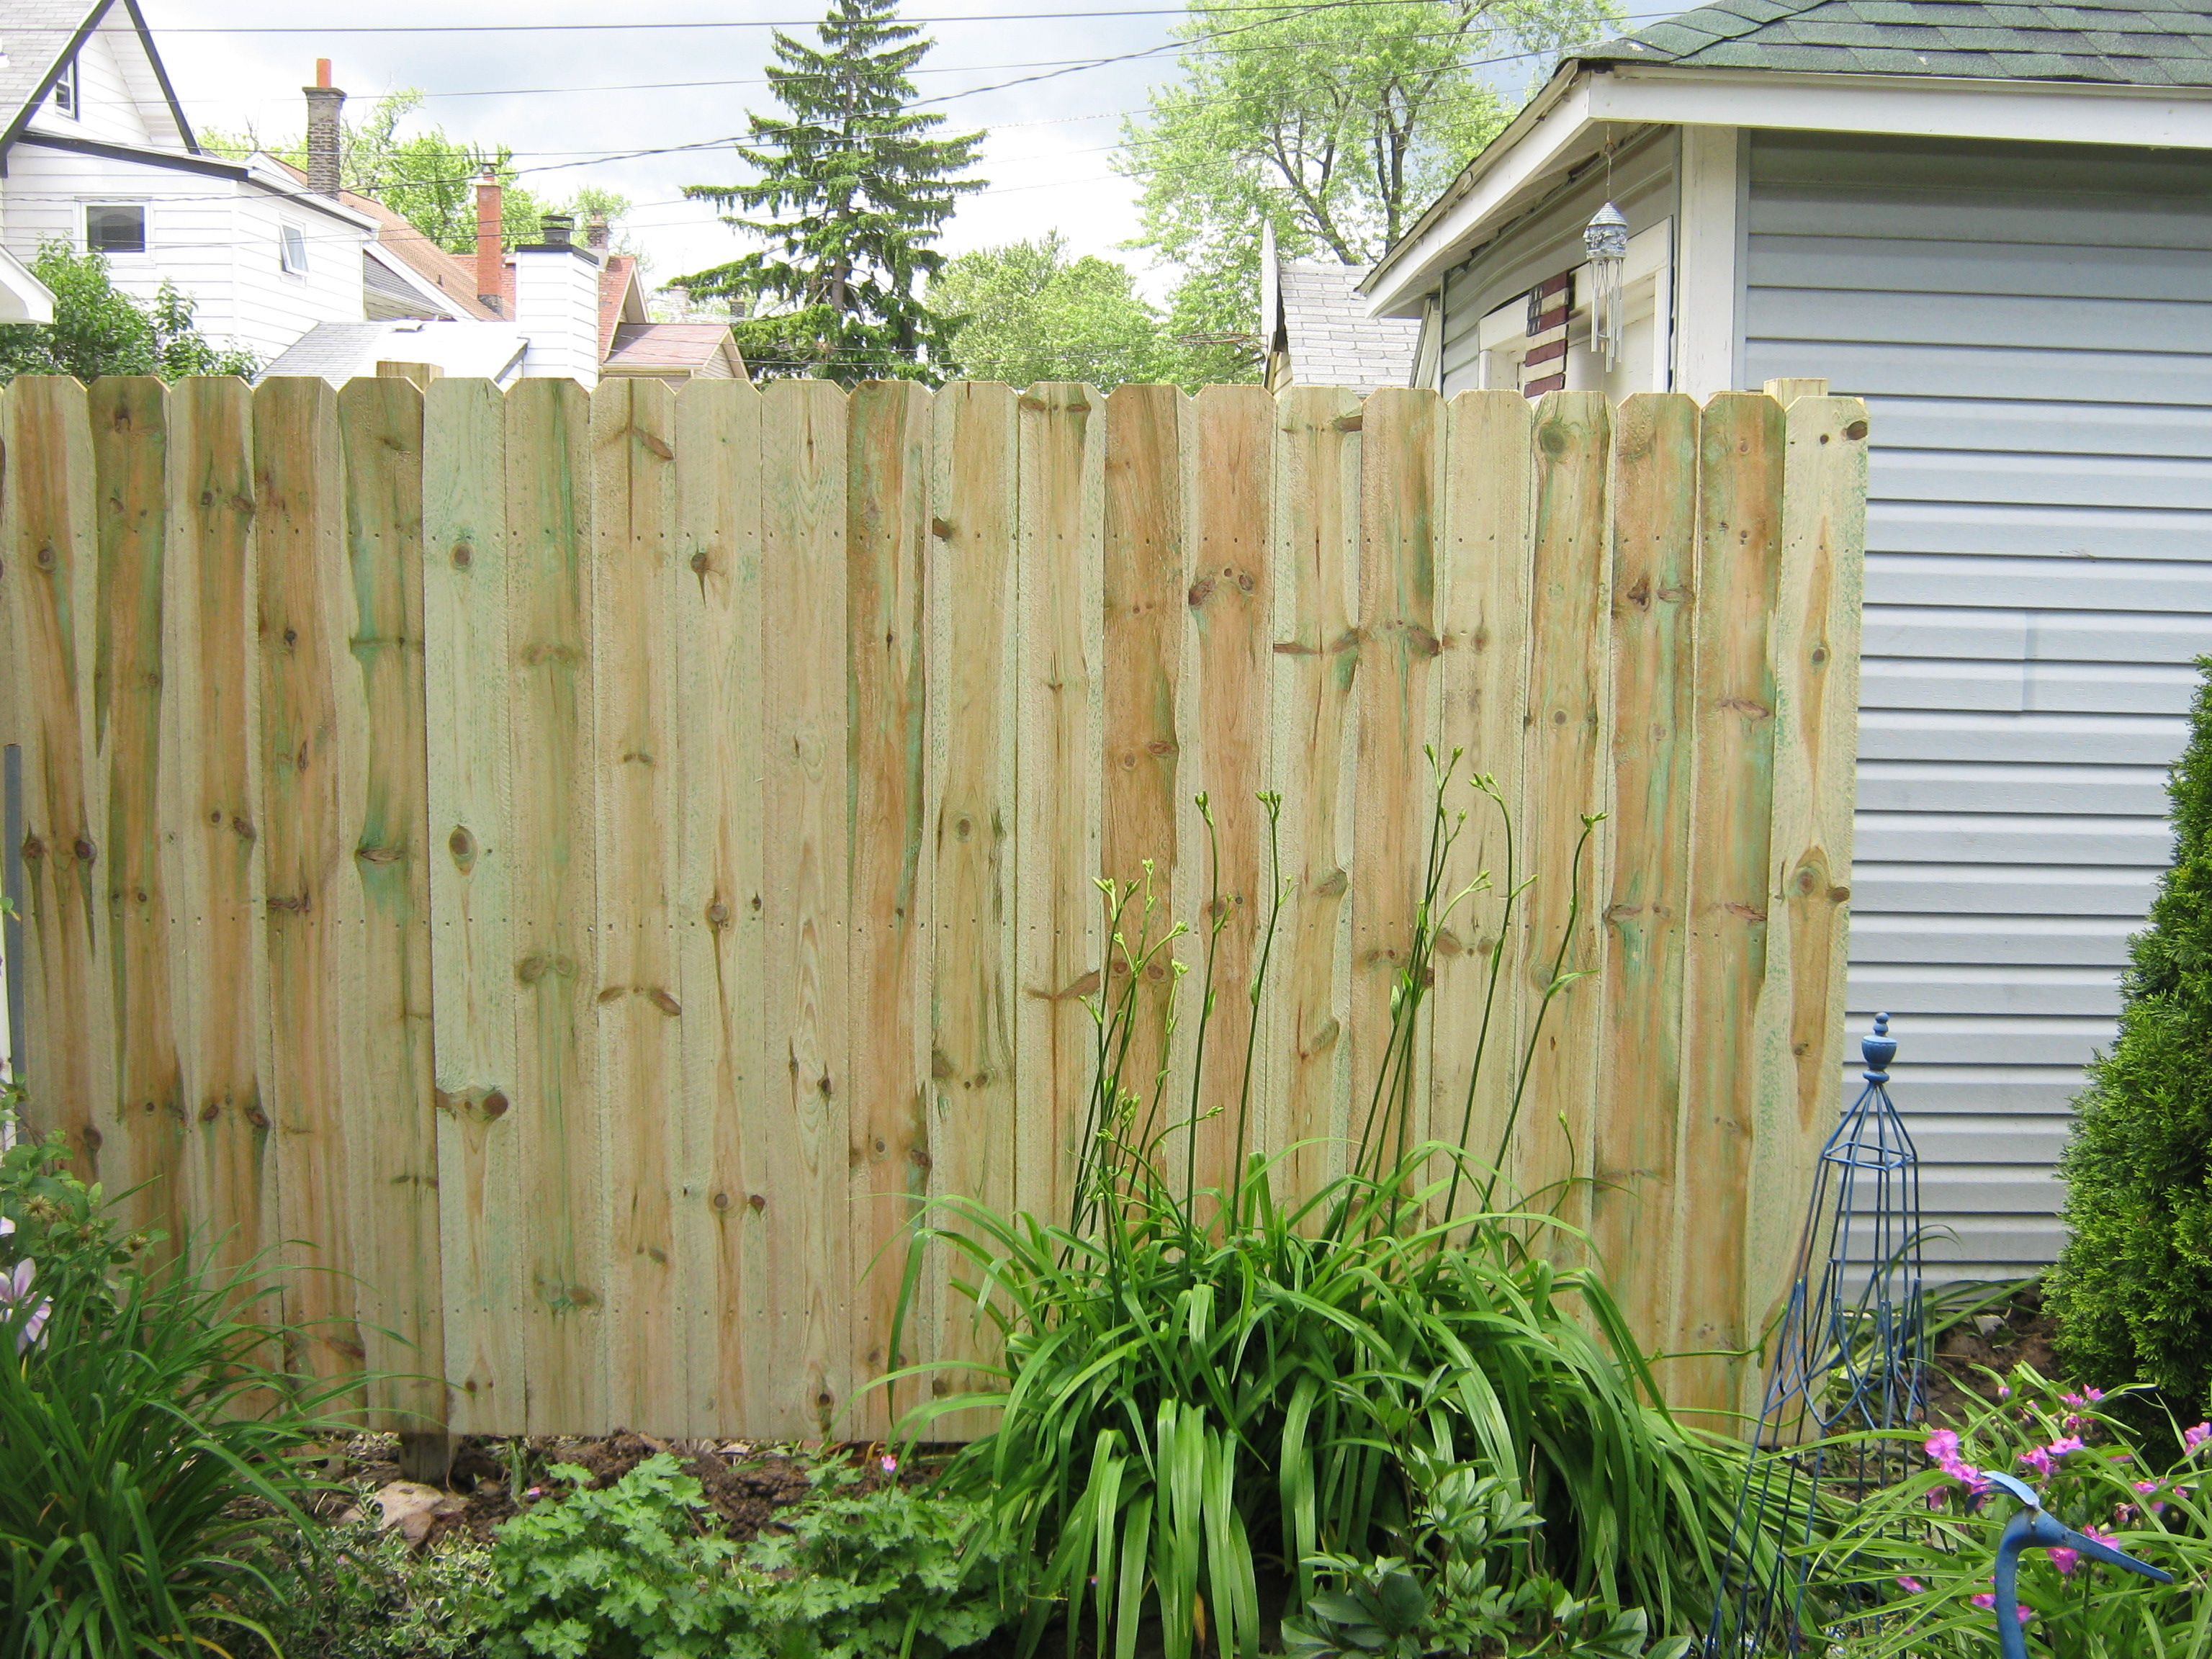 how to clean pressure treated wood fence